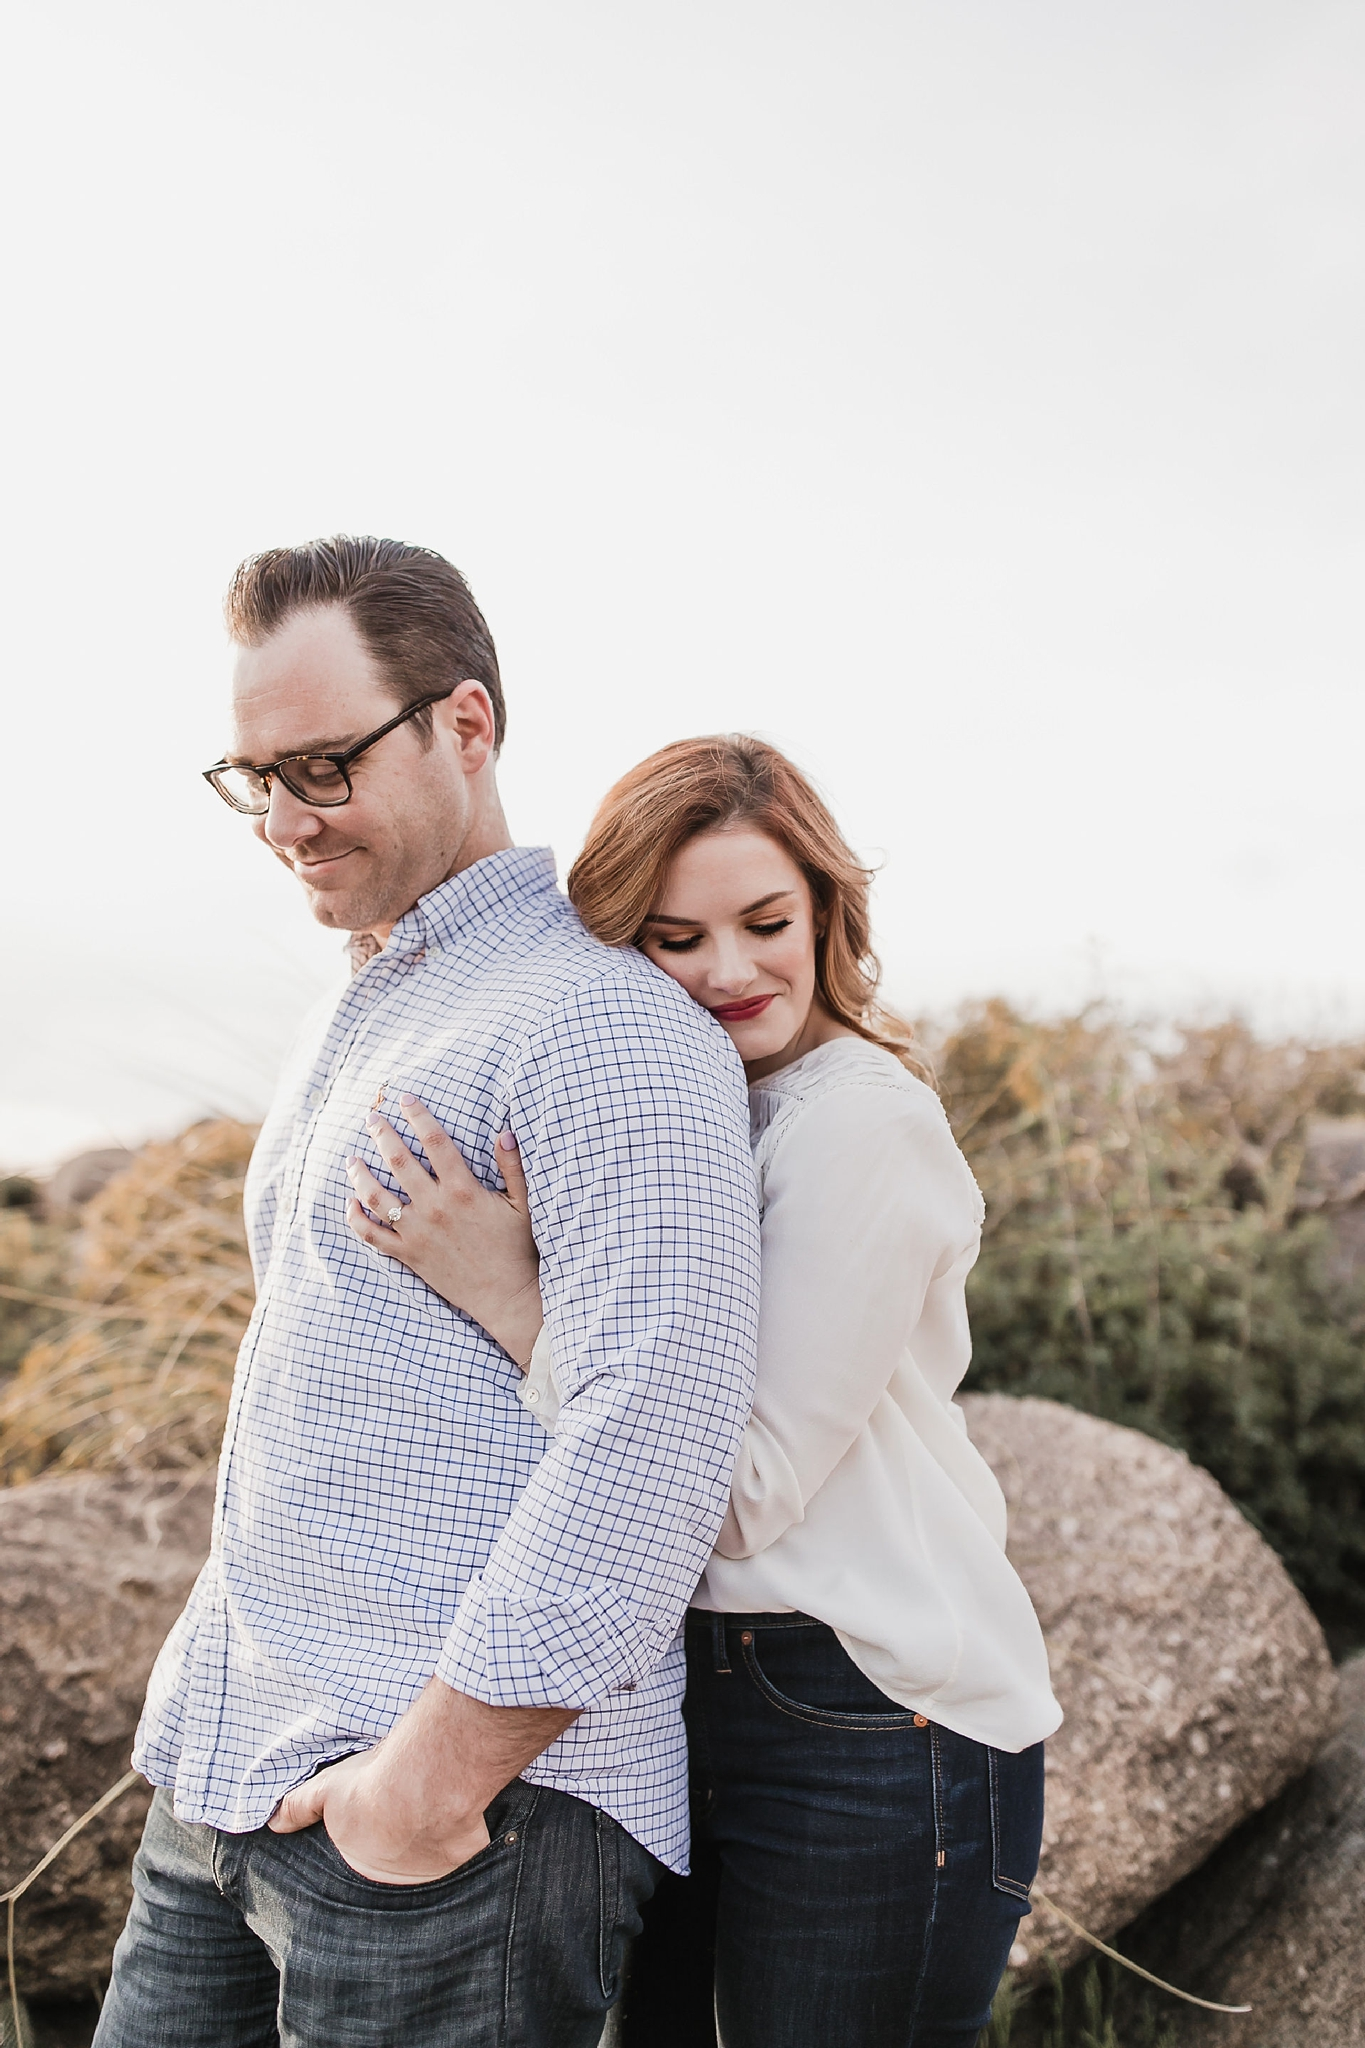 Alicia+lucia+photography+-+albuquerque+wedding+photographer+-+santa+fe+wedding+photography+-+new+mexico+wedding+photographer+-+new+mexico+wedding+-+new+mexico+engagement+-+engagement+photographer+-+mountain+engagement+-+desert+engagement_0004.jpg